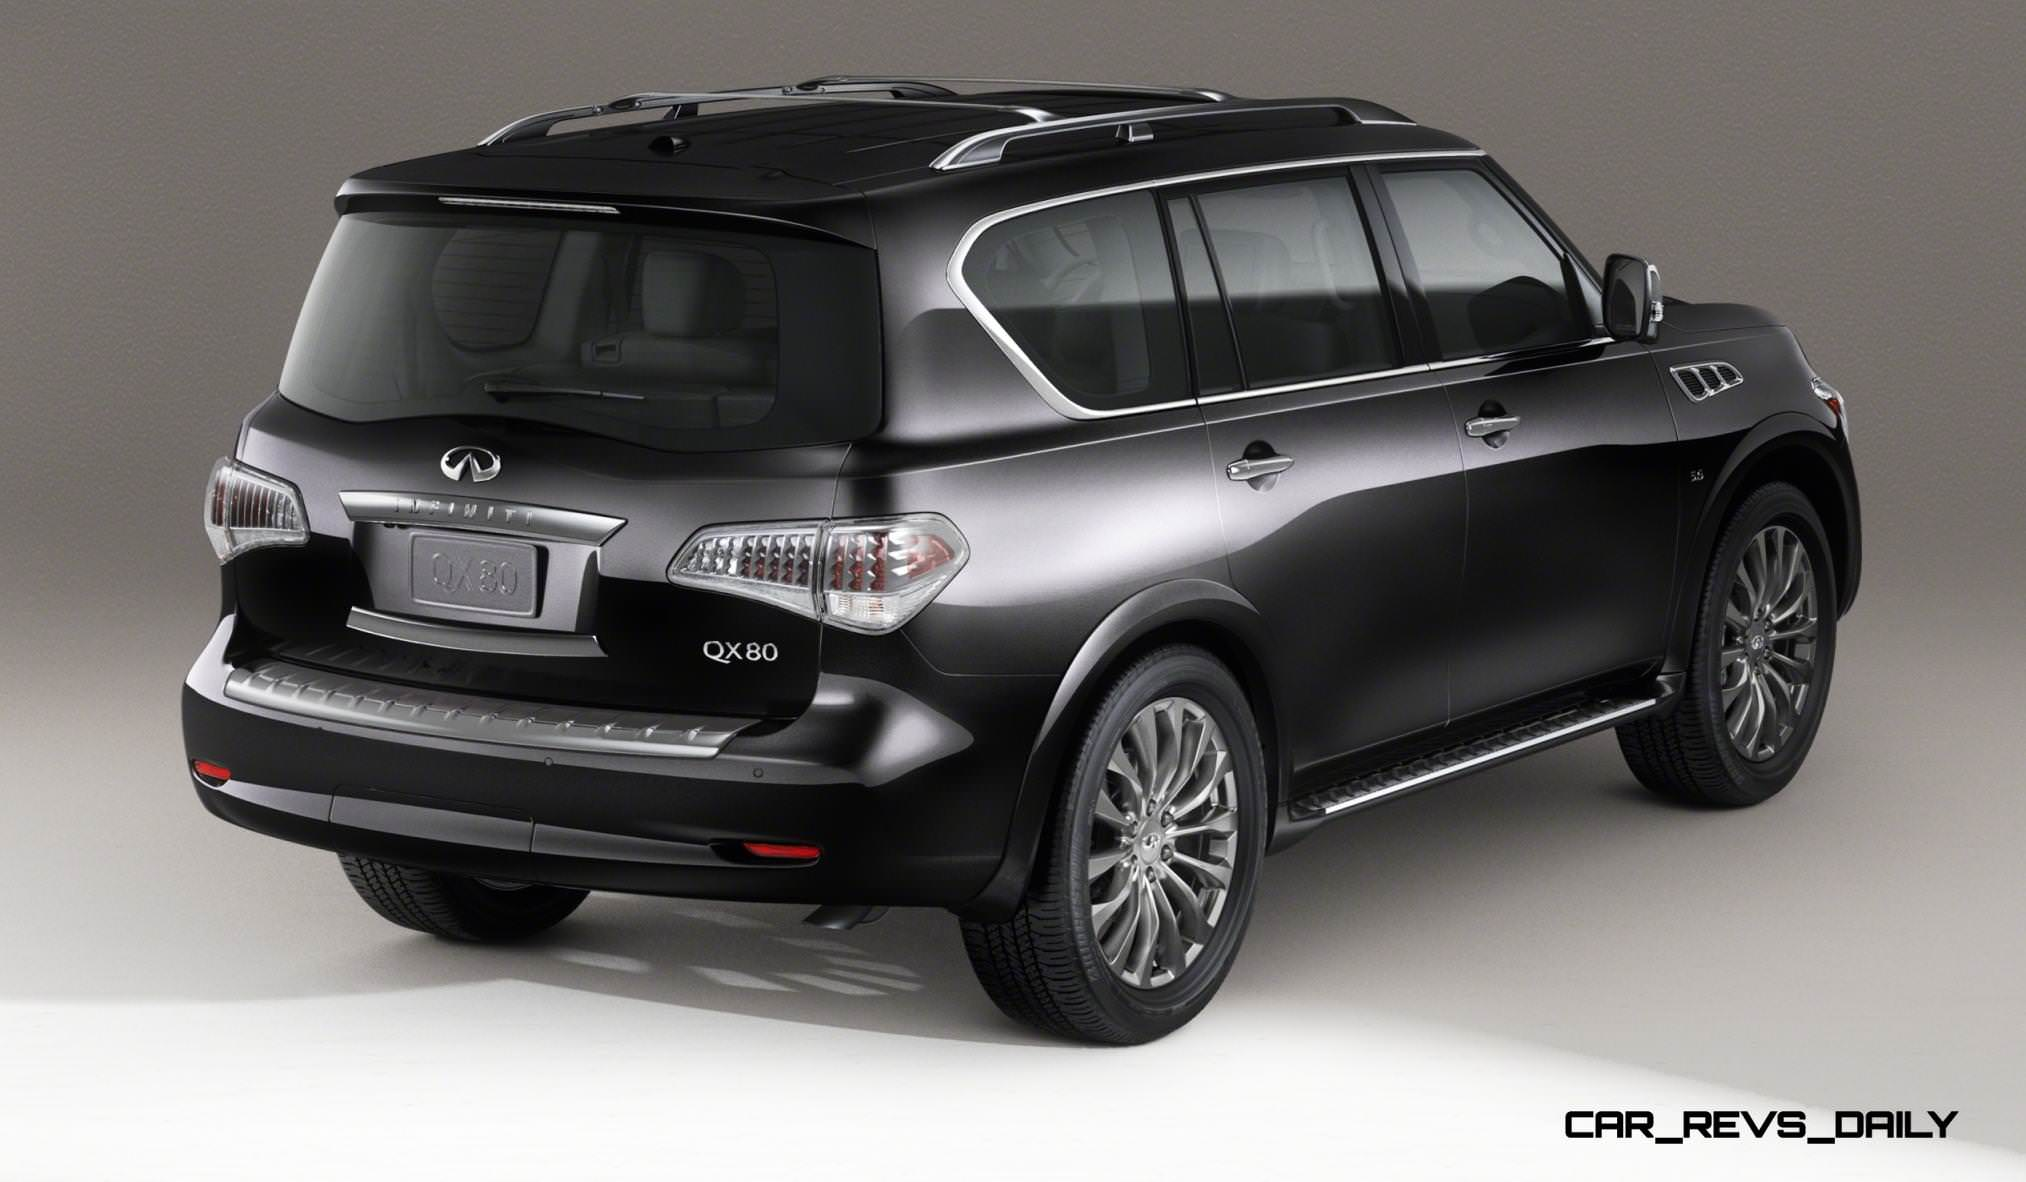 2015 INFINITI QX80 Limited Is Red-Carpet Glamour With